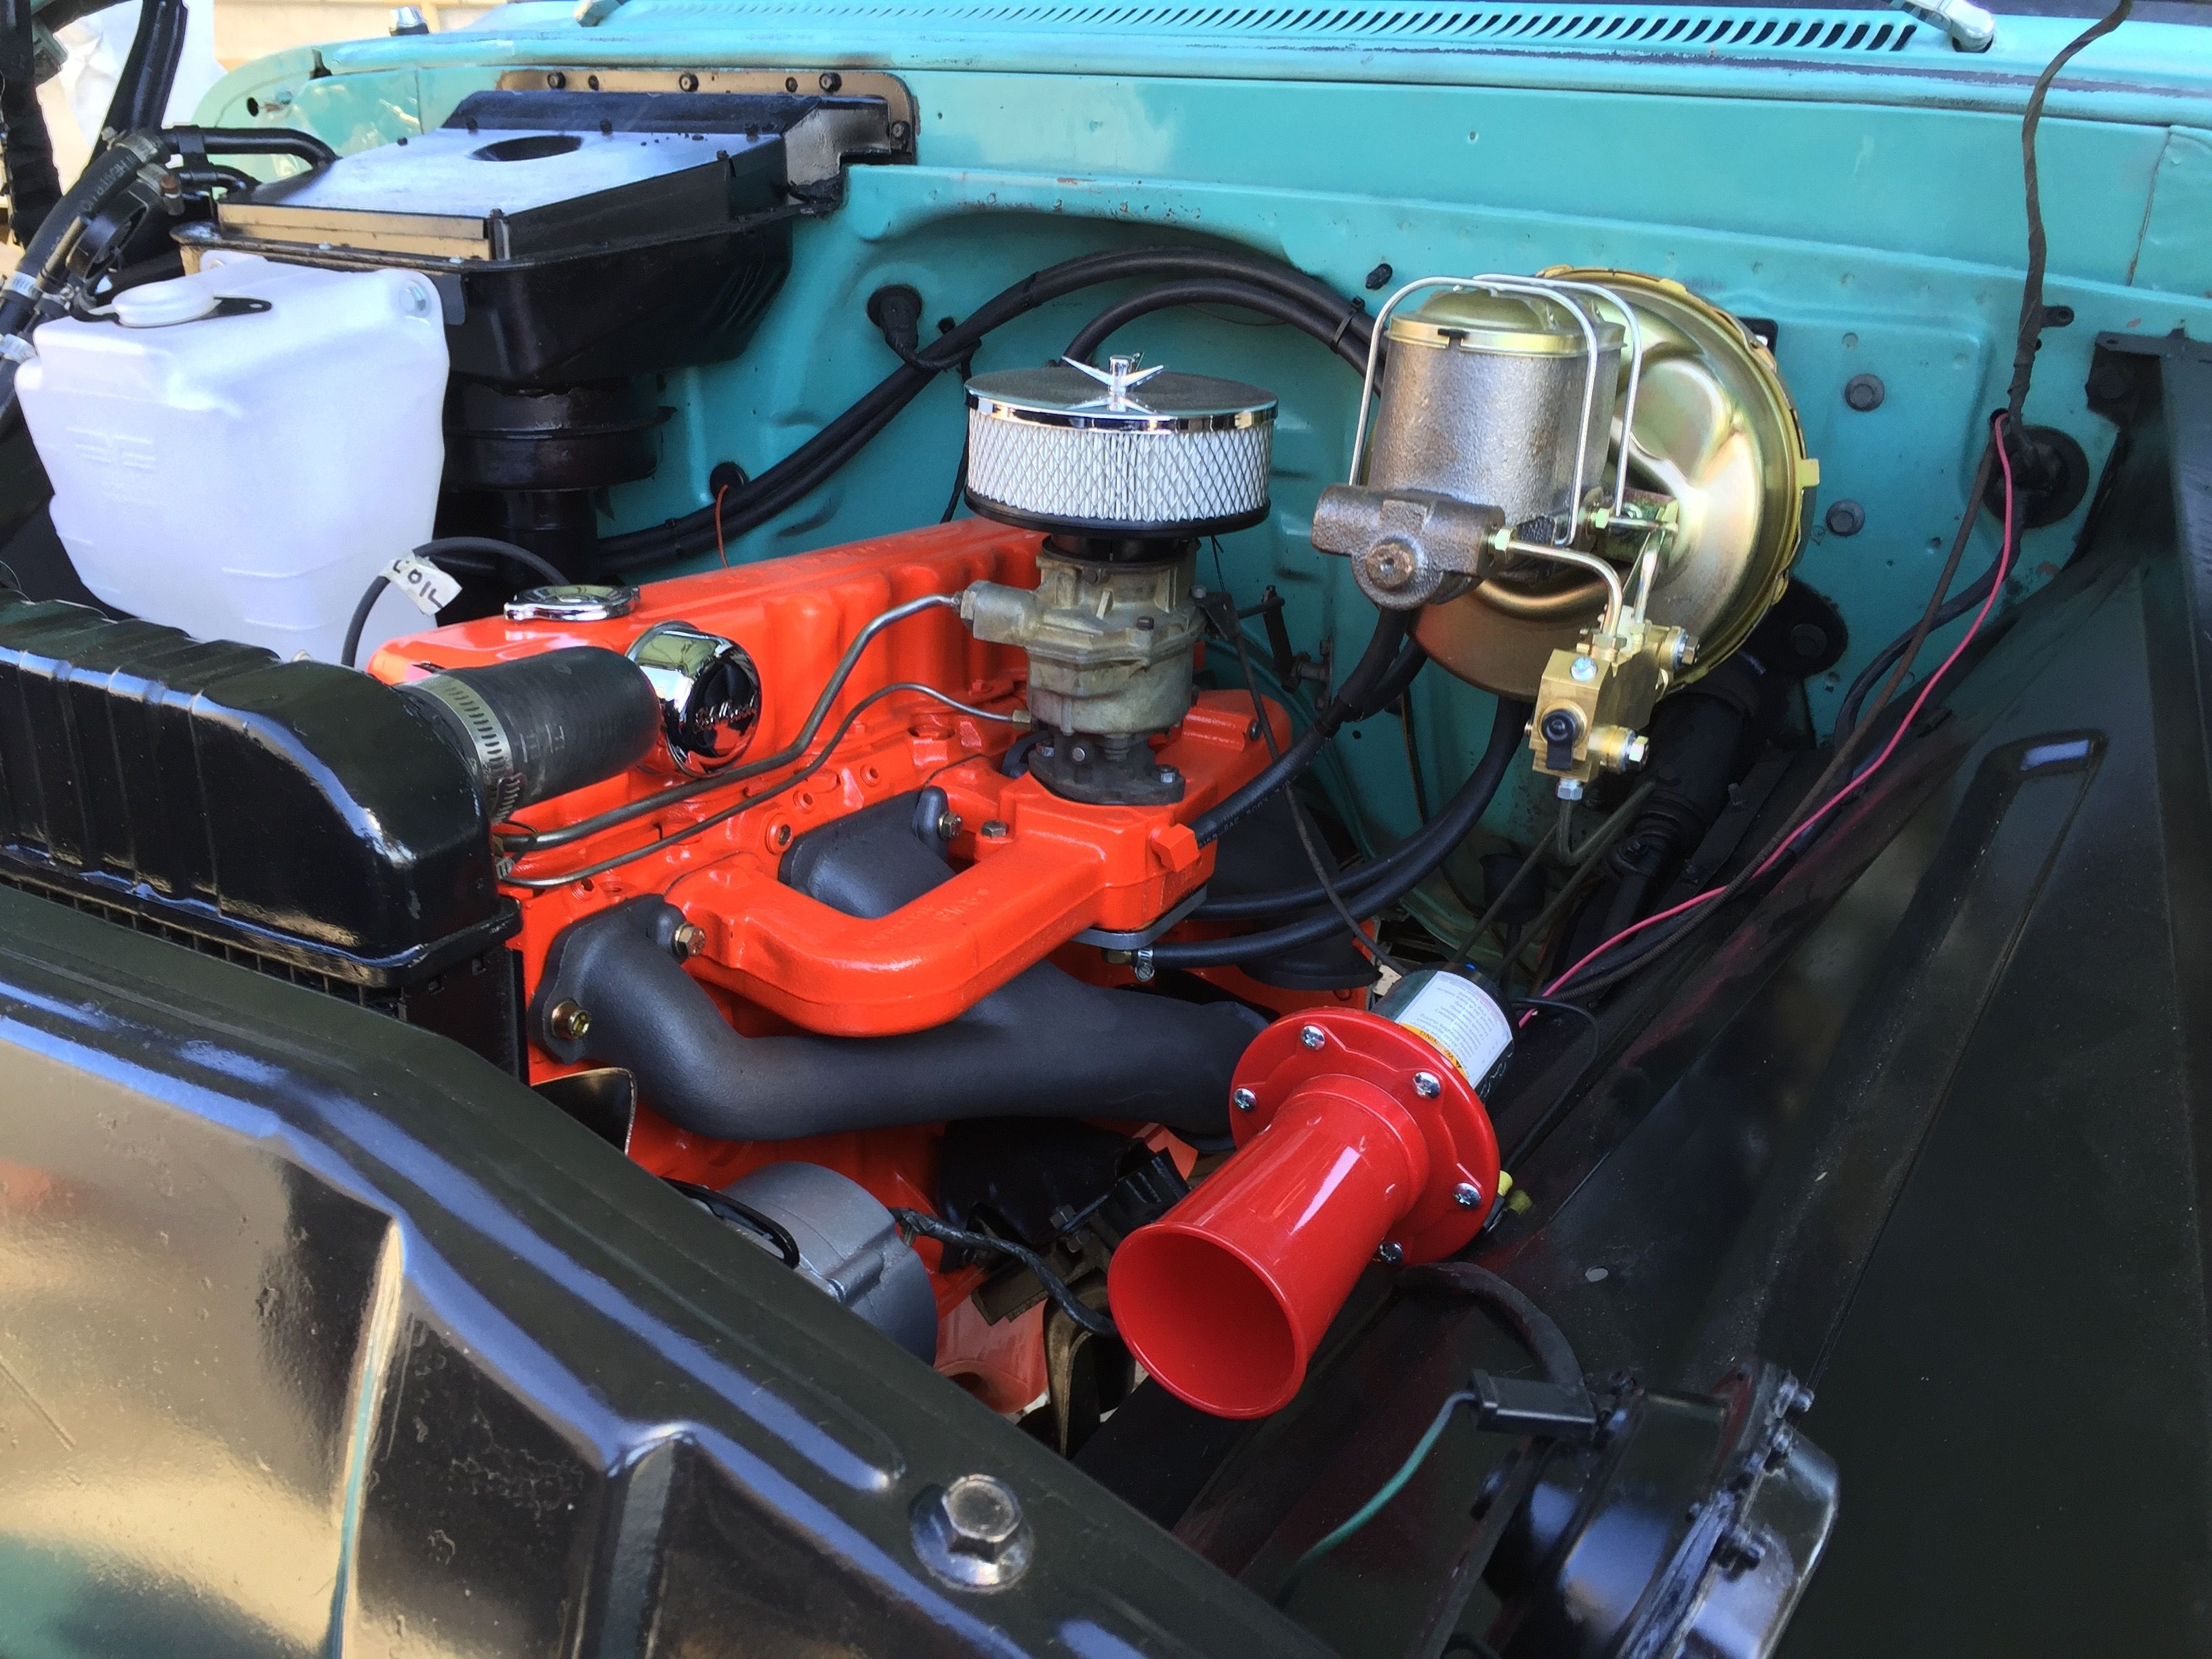 Chevrolet 230 rebuilt to Chevrolet 250. This engine features ...